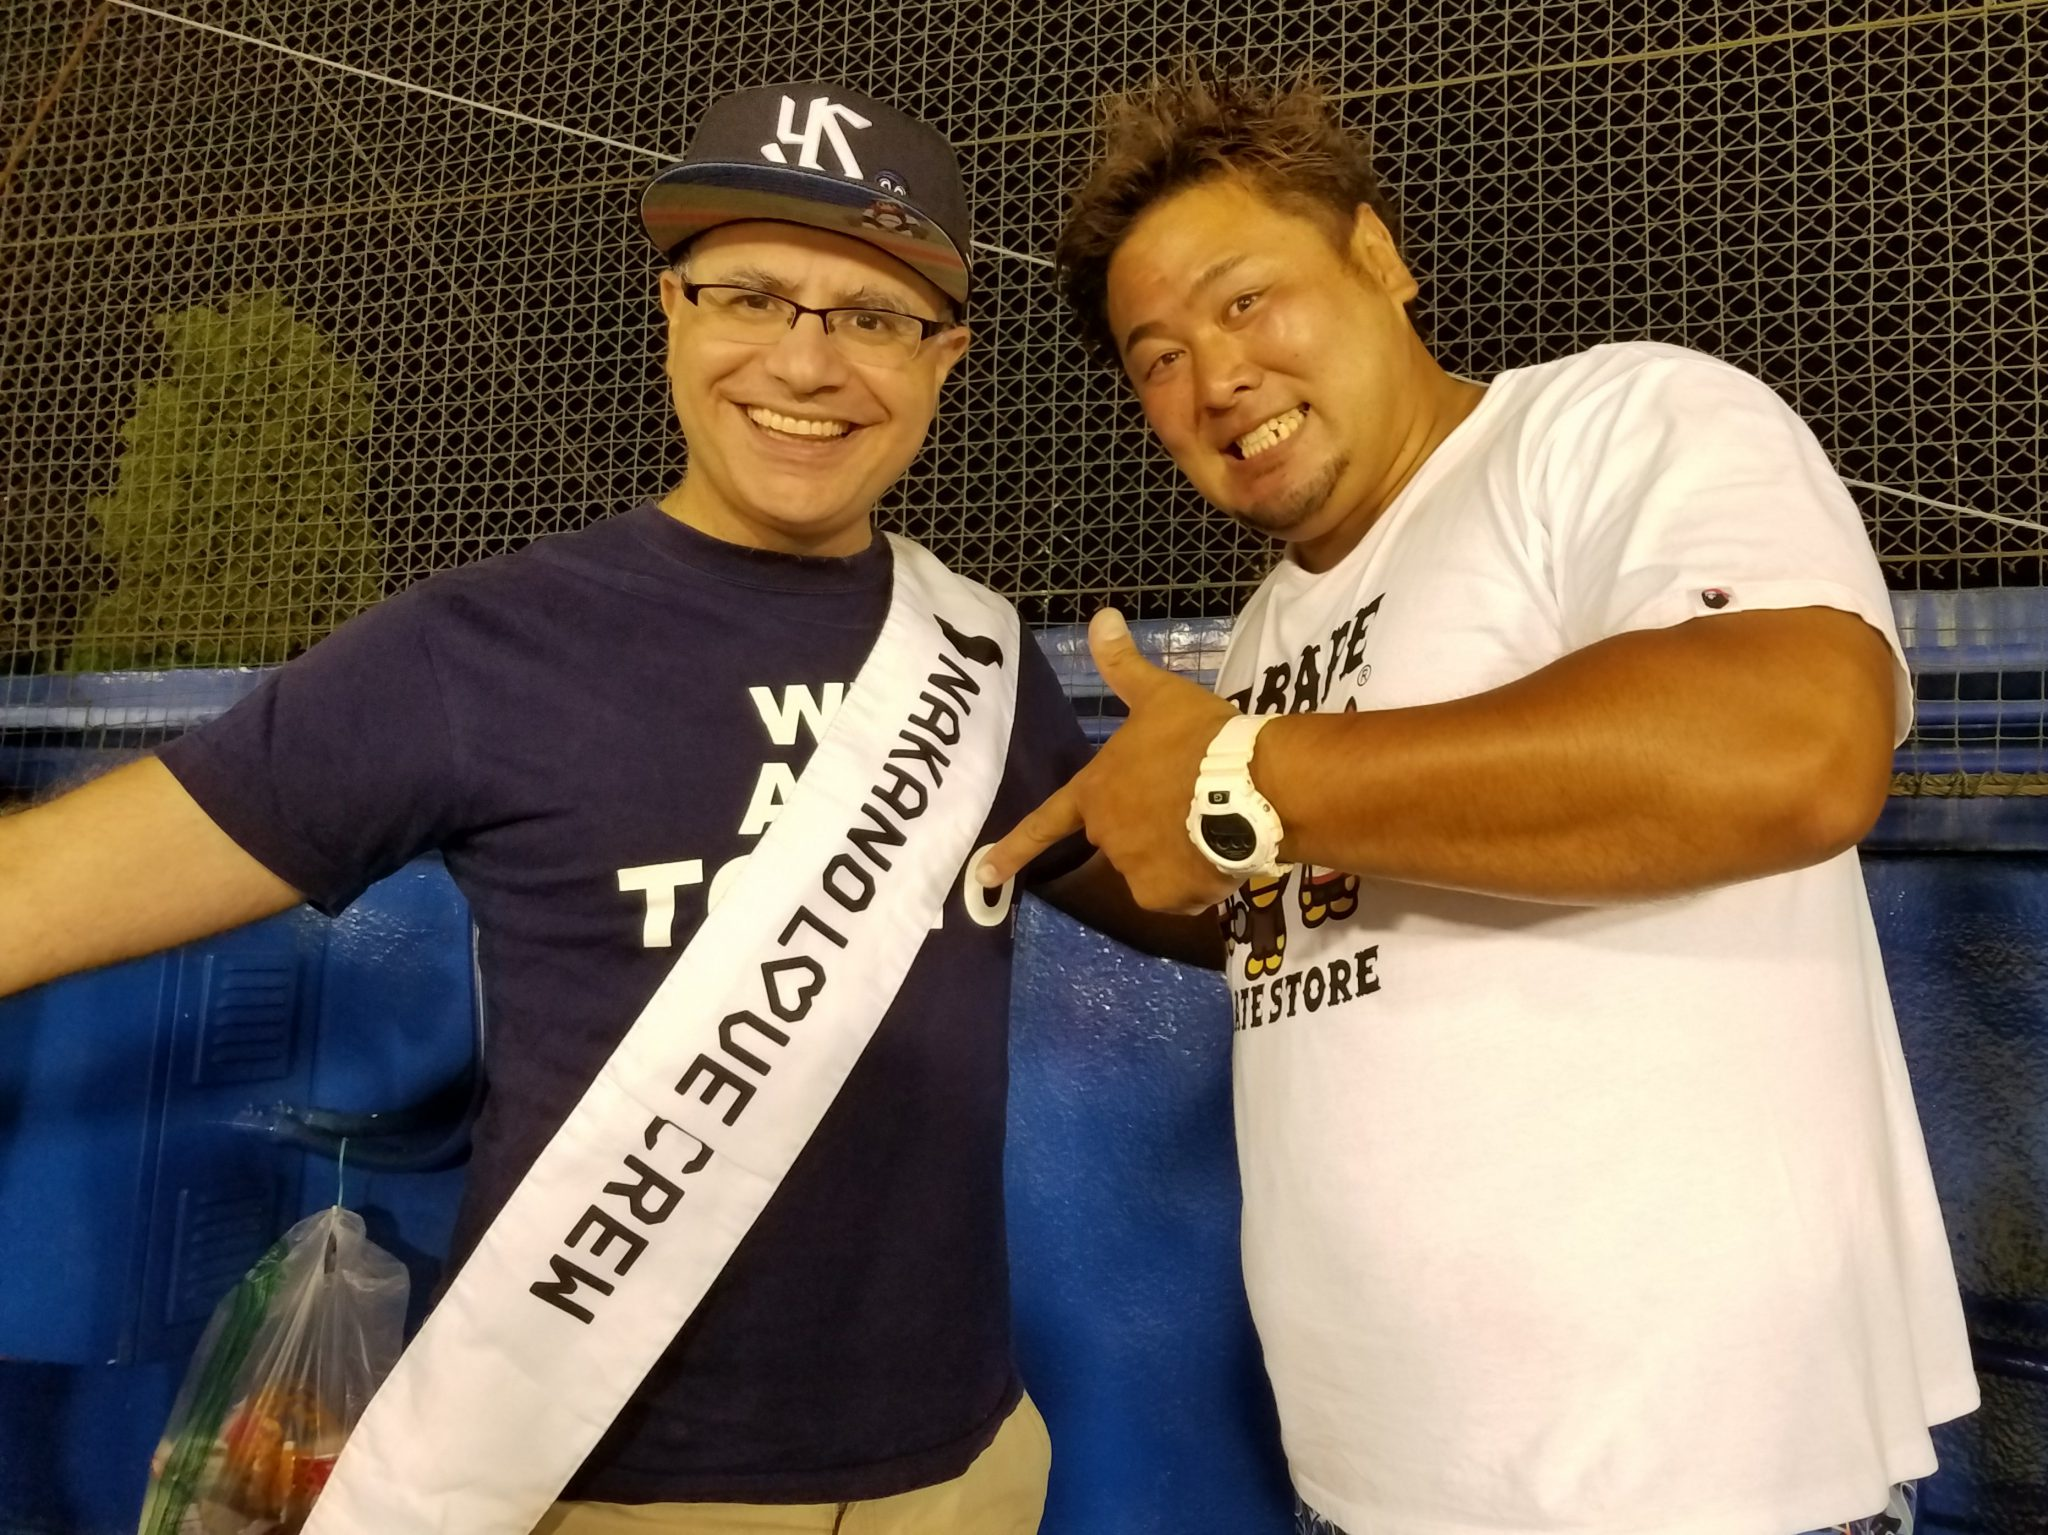 Mac, Founder and Lead Guide of Maction Planet, becomes a member of the Nakano Love Crew!